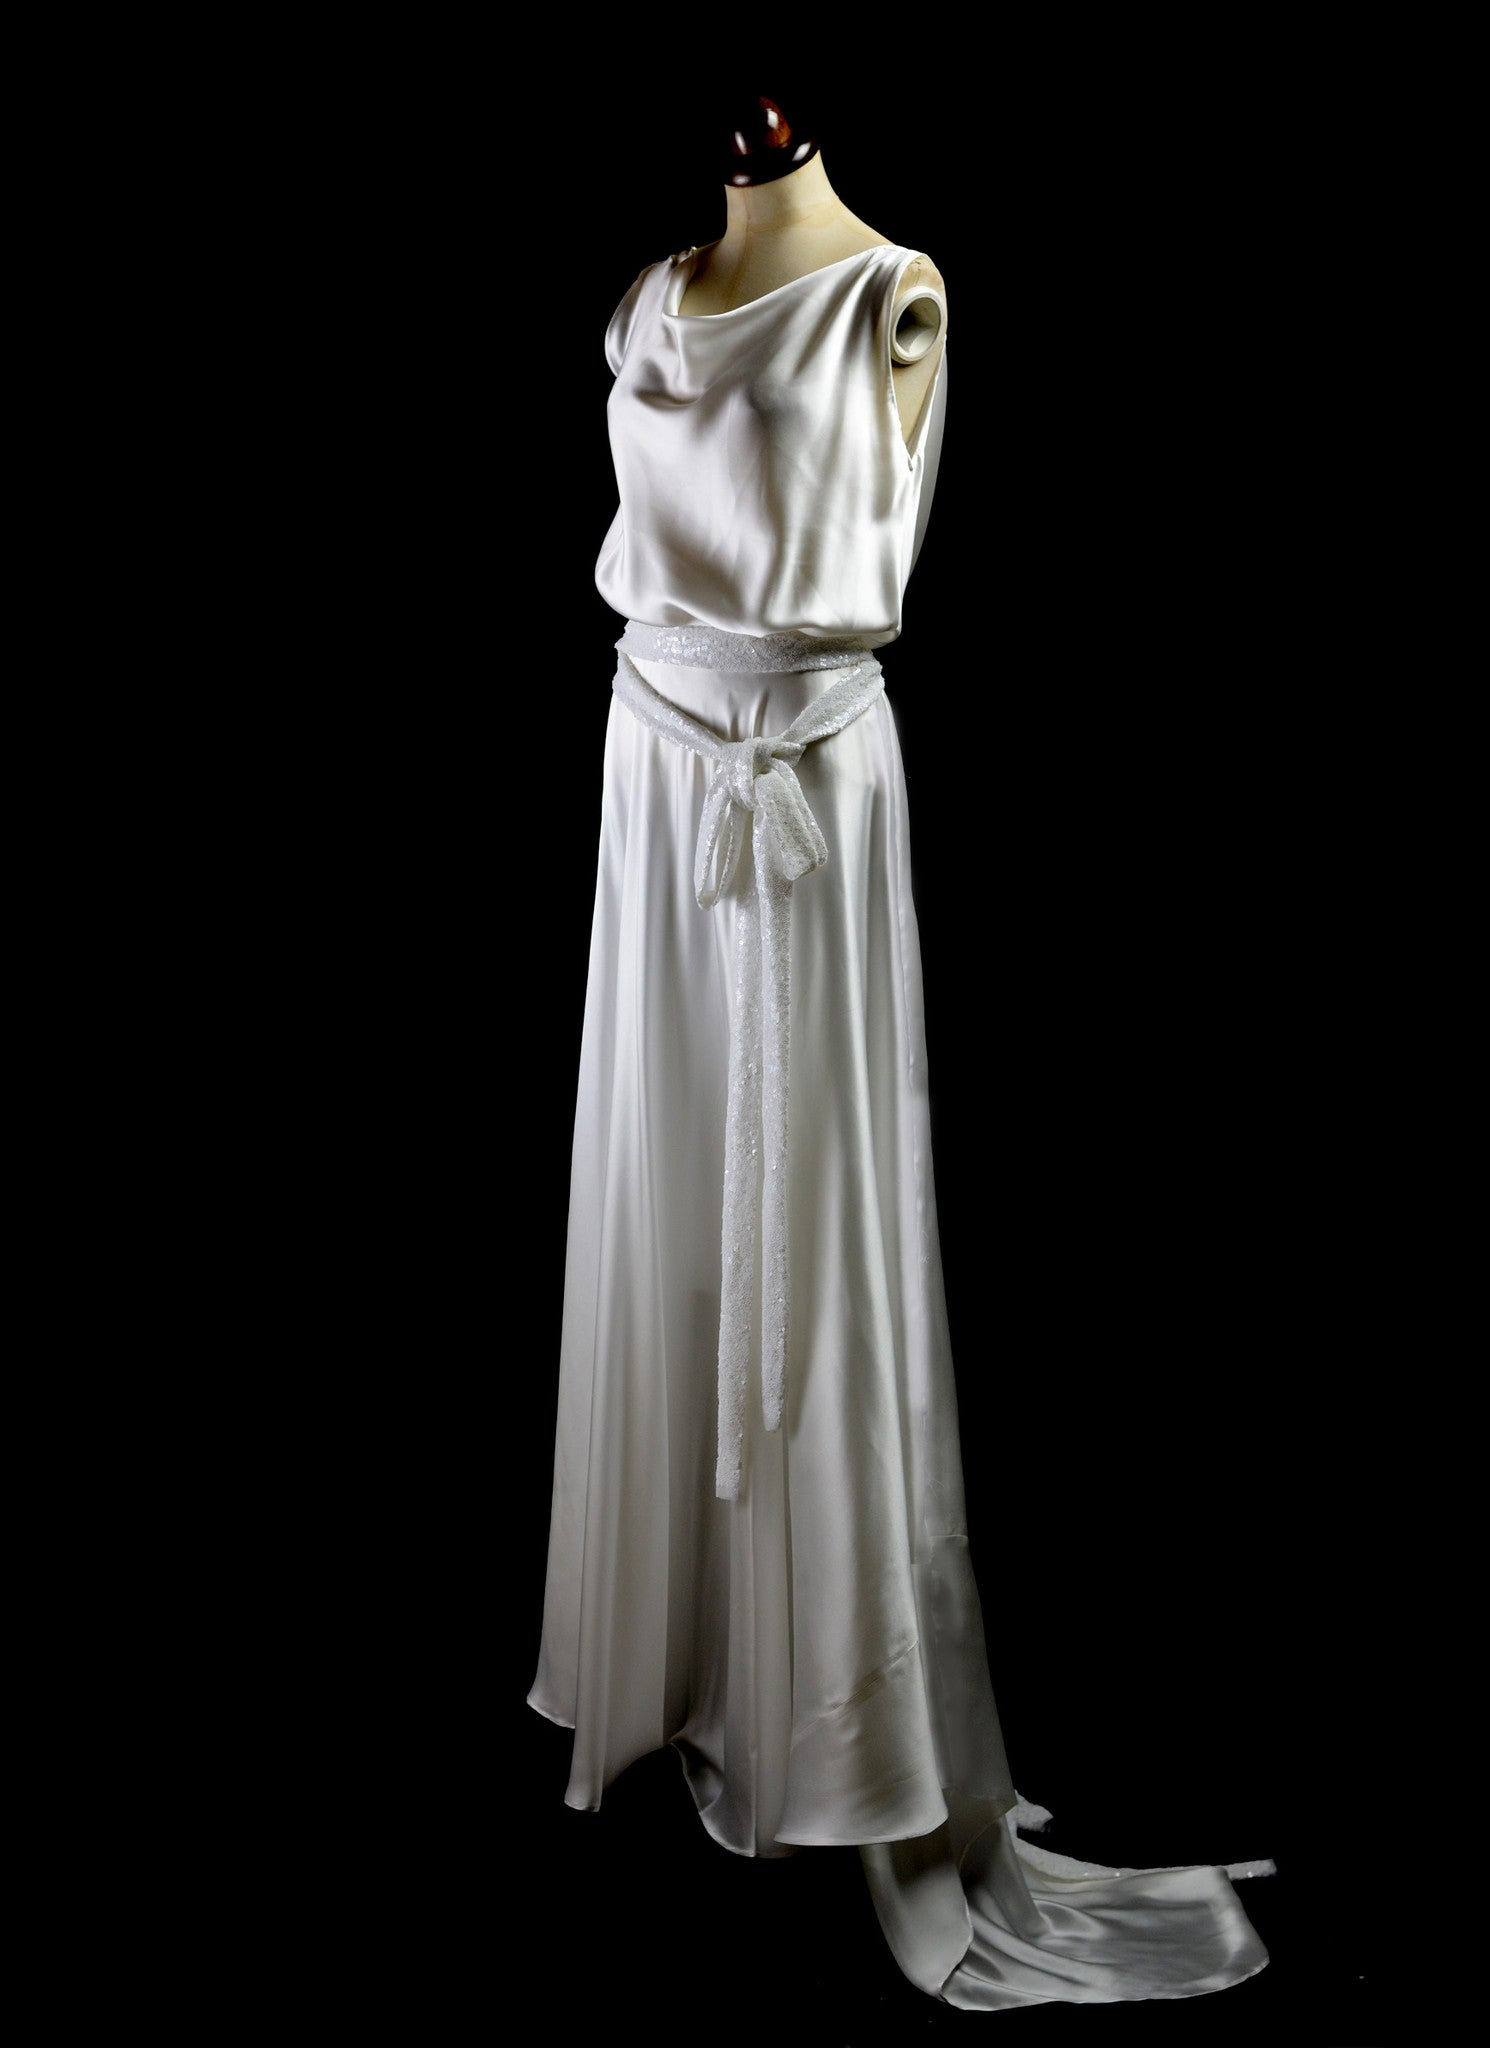 1930 Satin Bias Cut Dress Alexandraking